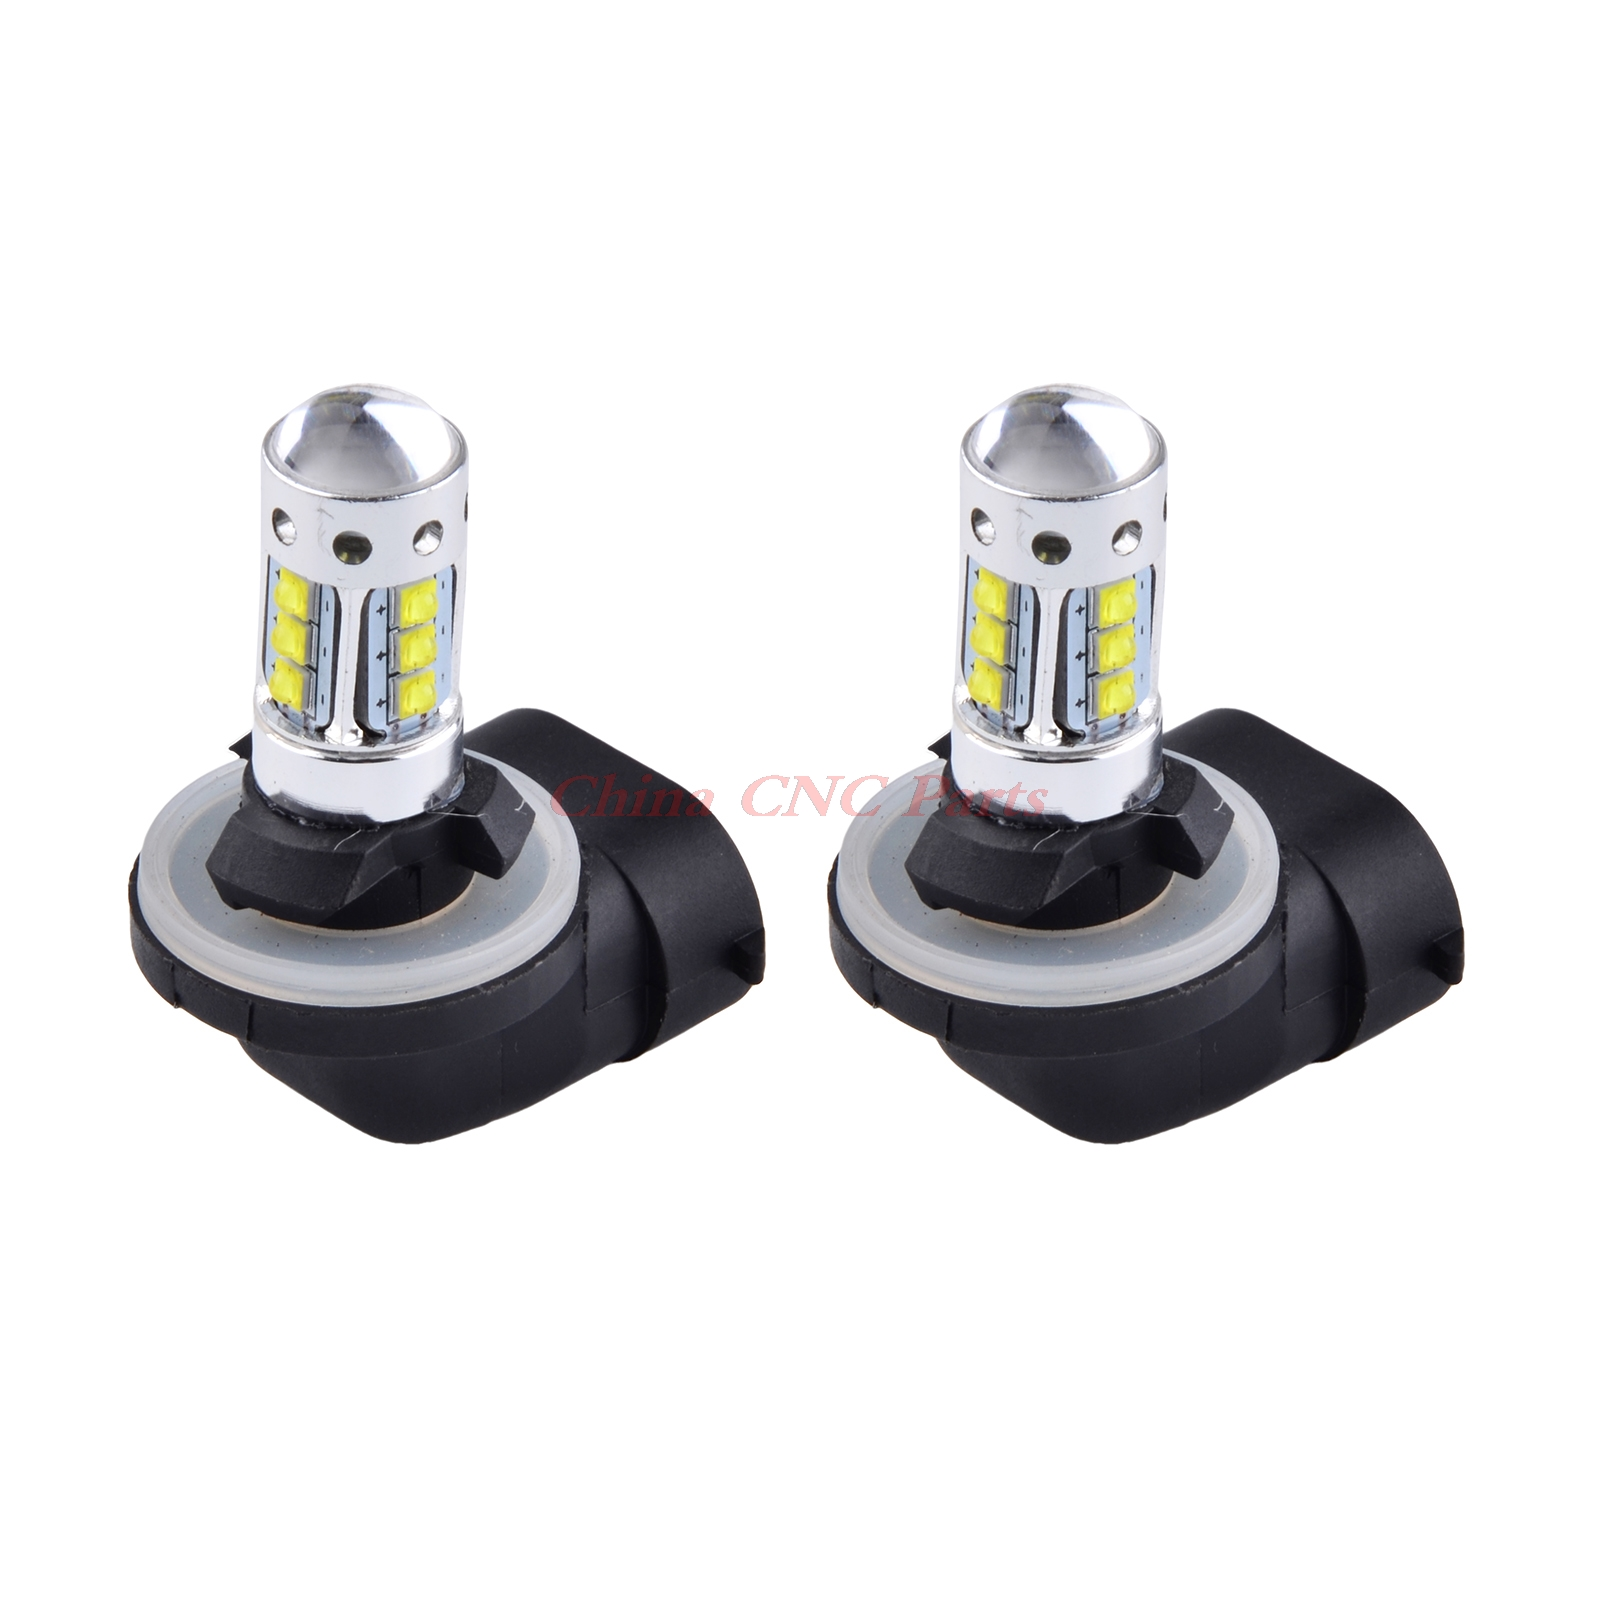 For 2014 Polaris Sportsman 570 800 850 HO Touring Forest EFI 50W Headlight Bulb